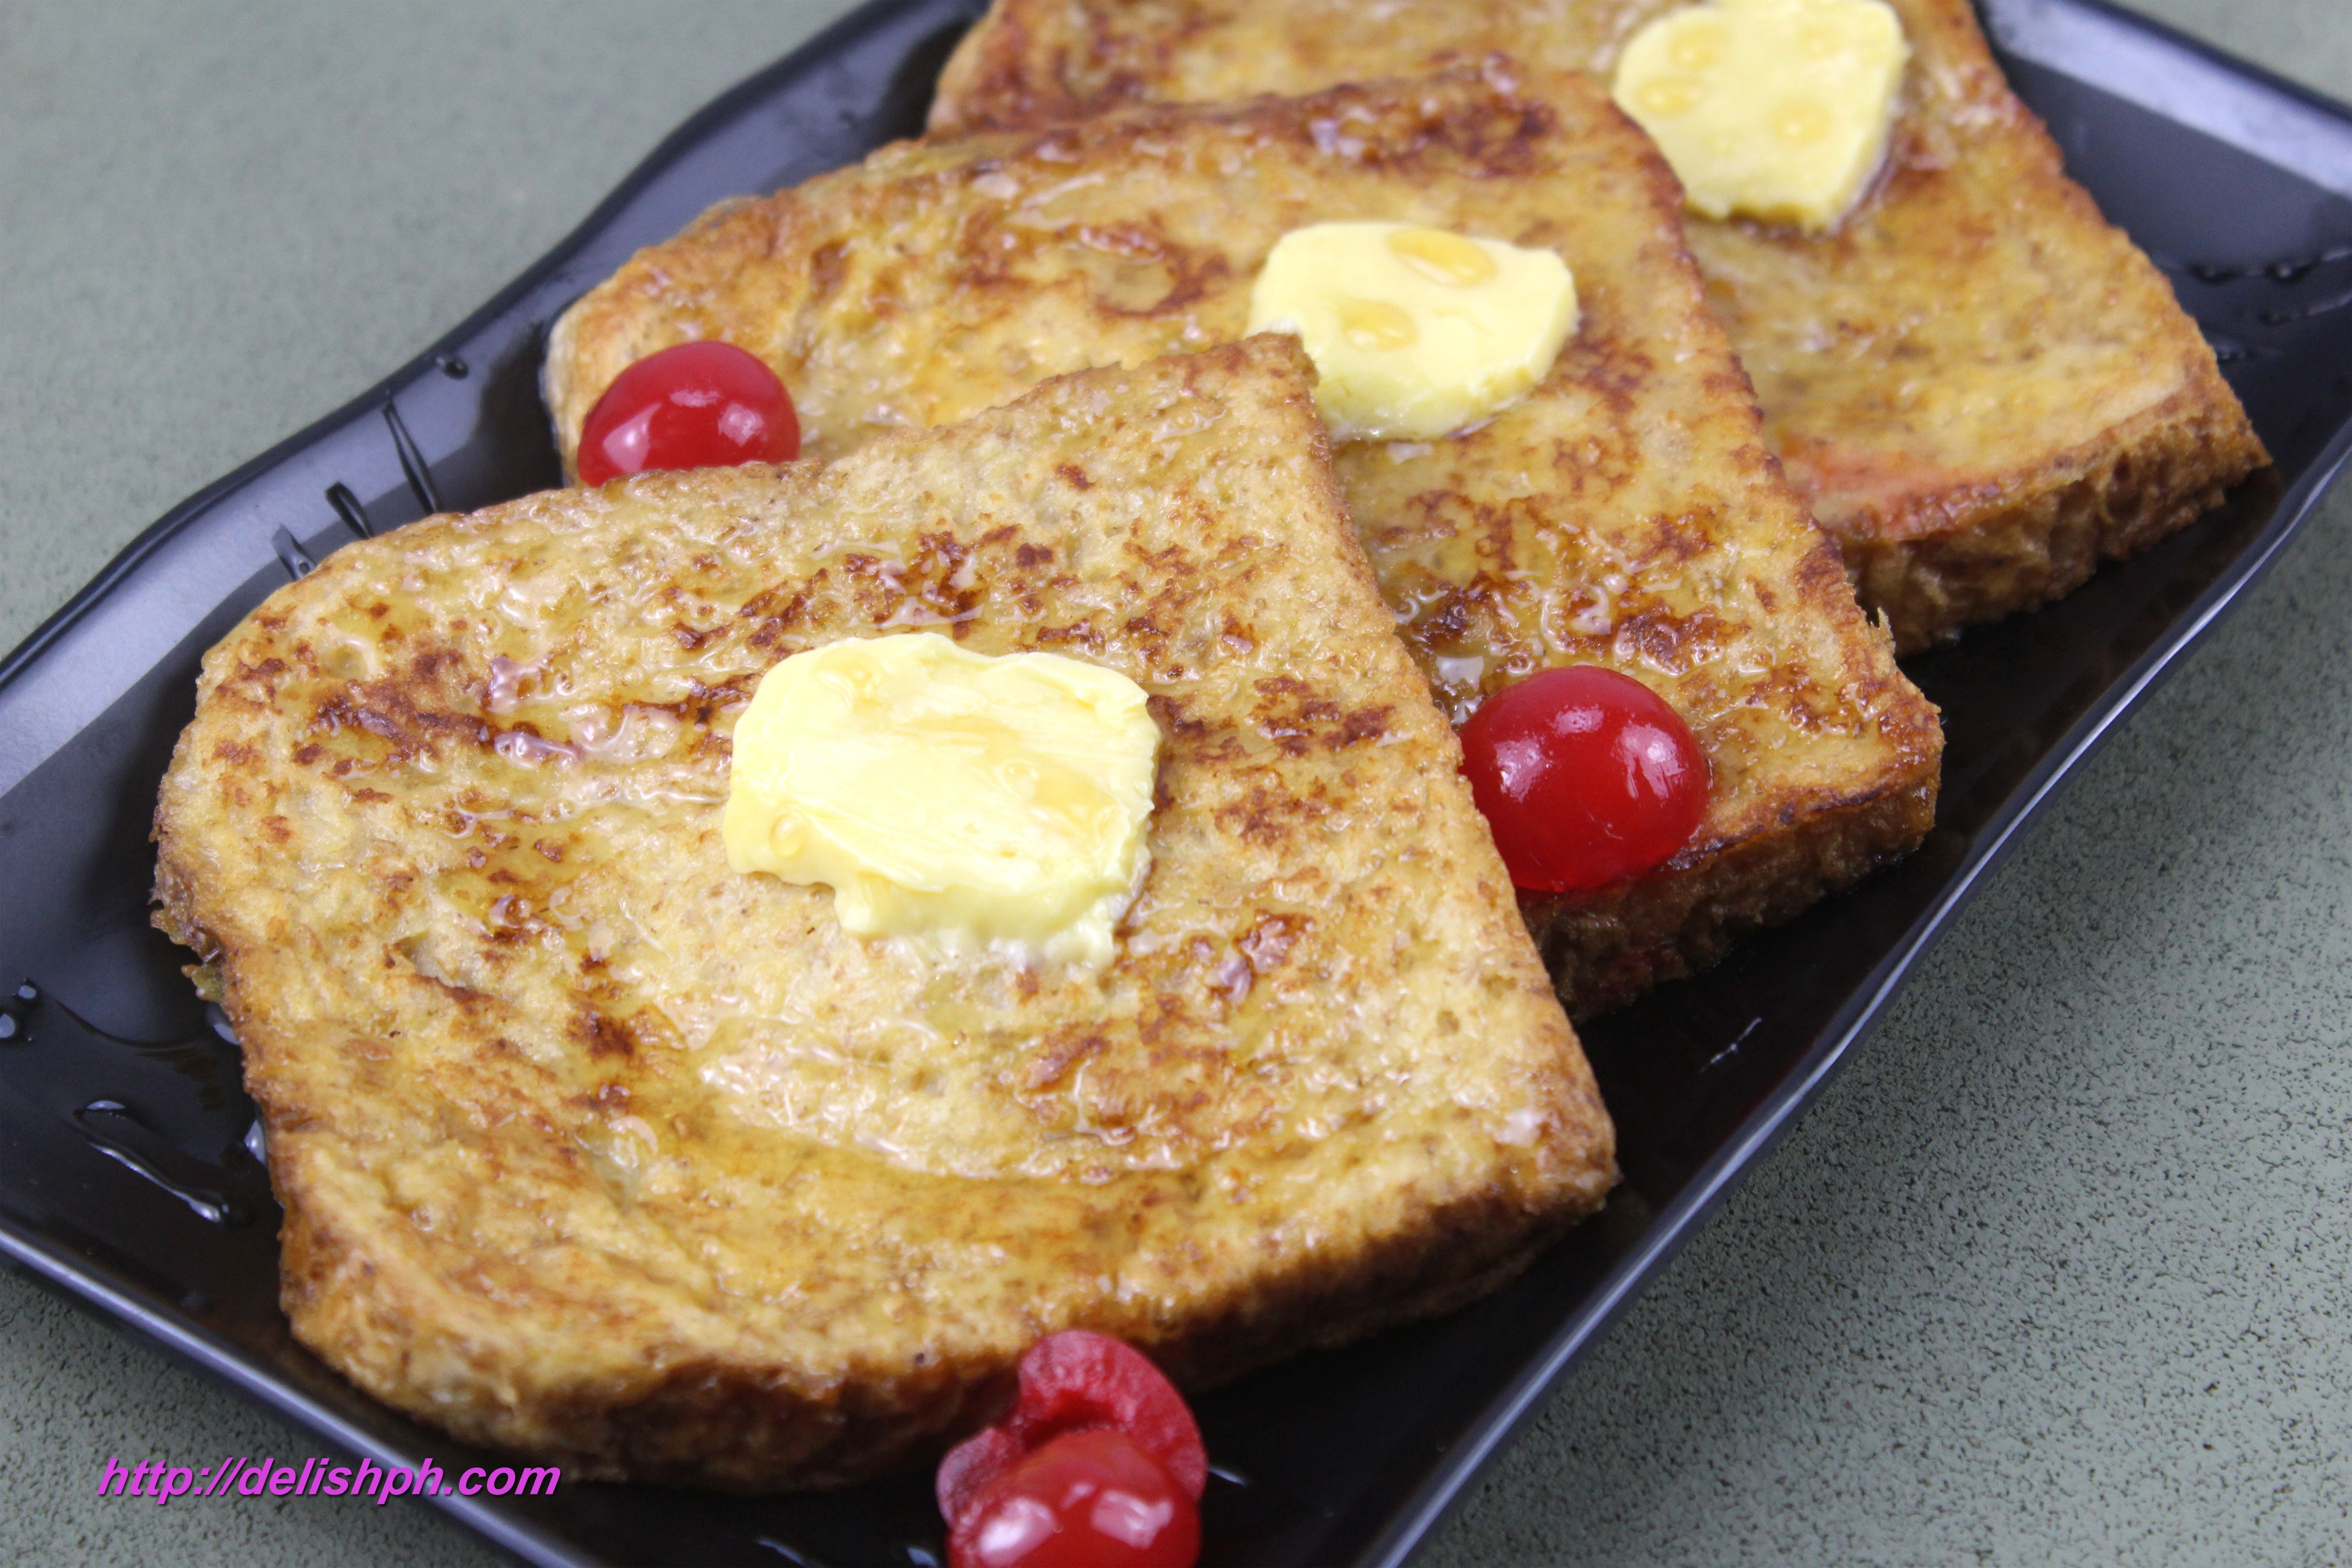 French toast httpdelishphfrench toast httpsyoutube turning them into a delicious french toast will make your breakfast one of a kind you dont have to go out and order a french toast if you know how to make forumfinder Images